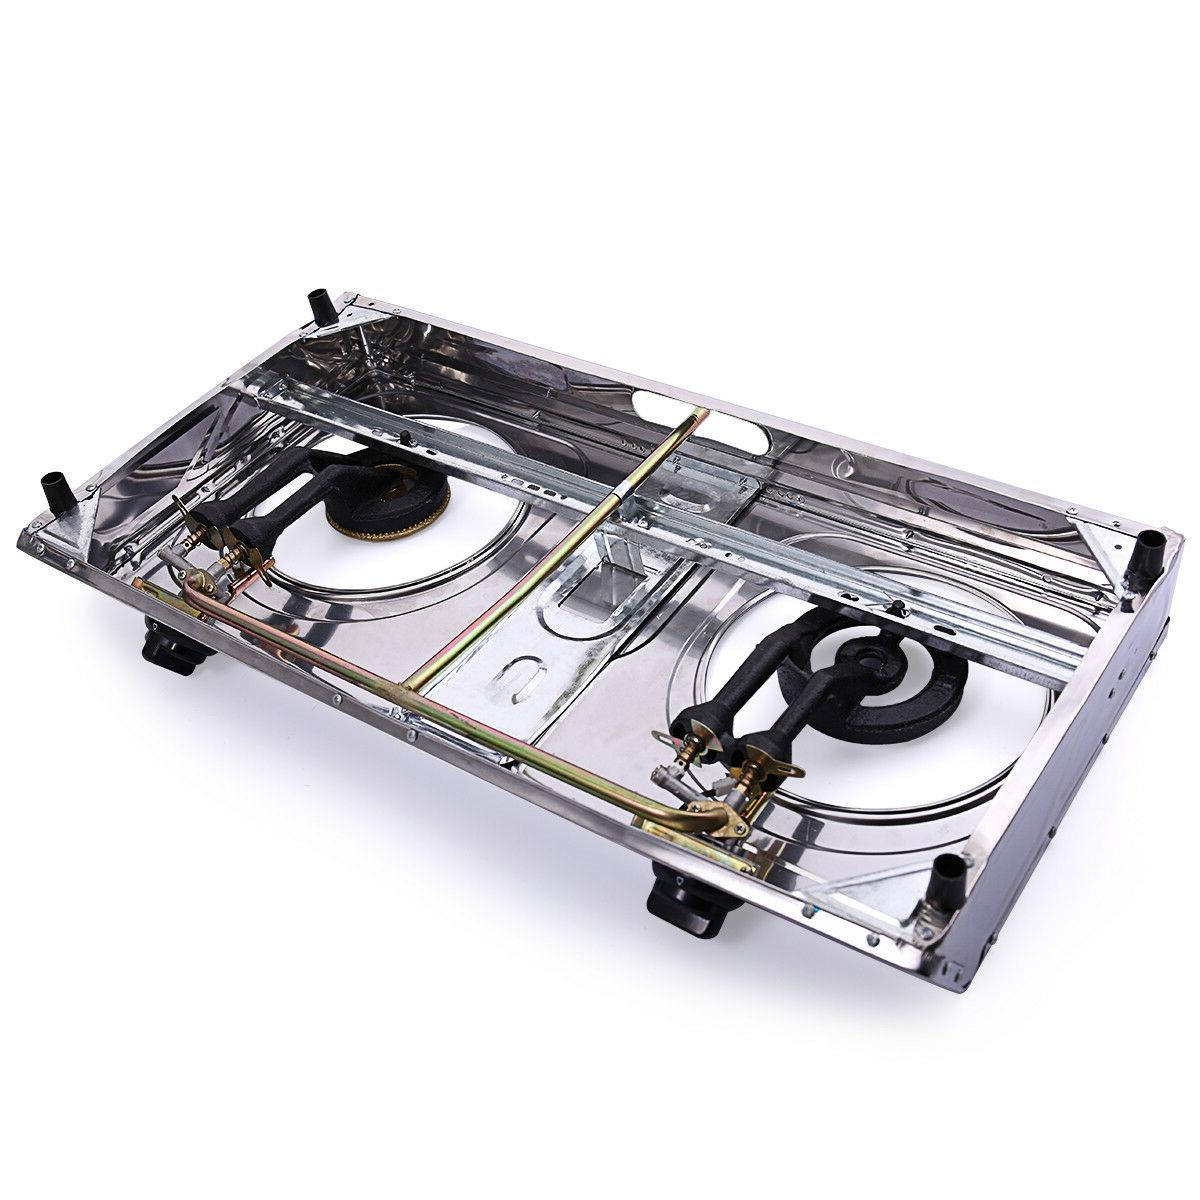 Stainless Gas, Portable Propane Stove Outdoor